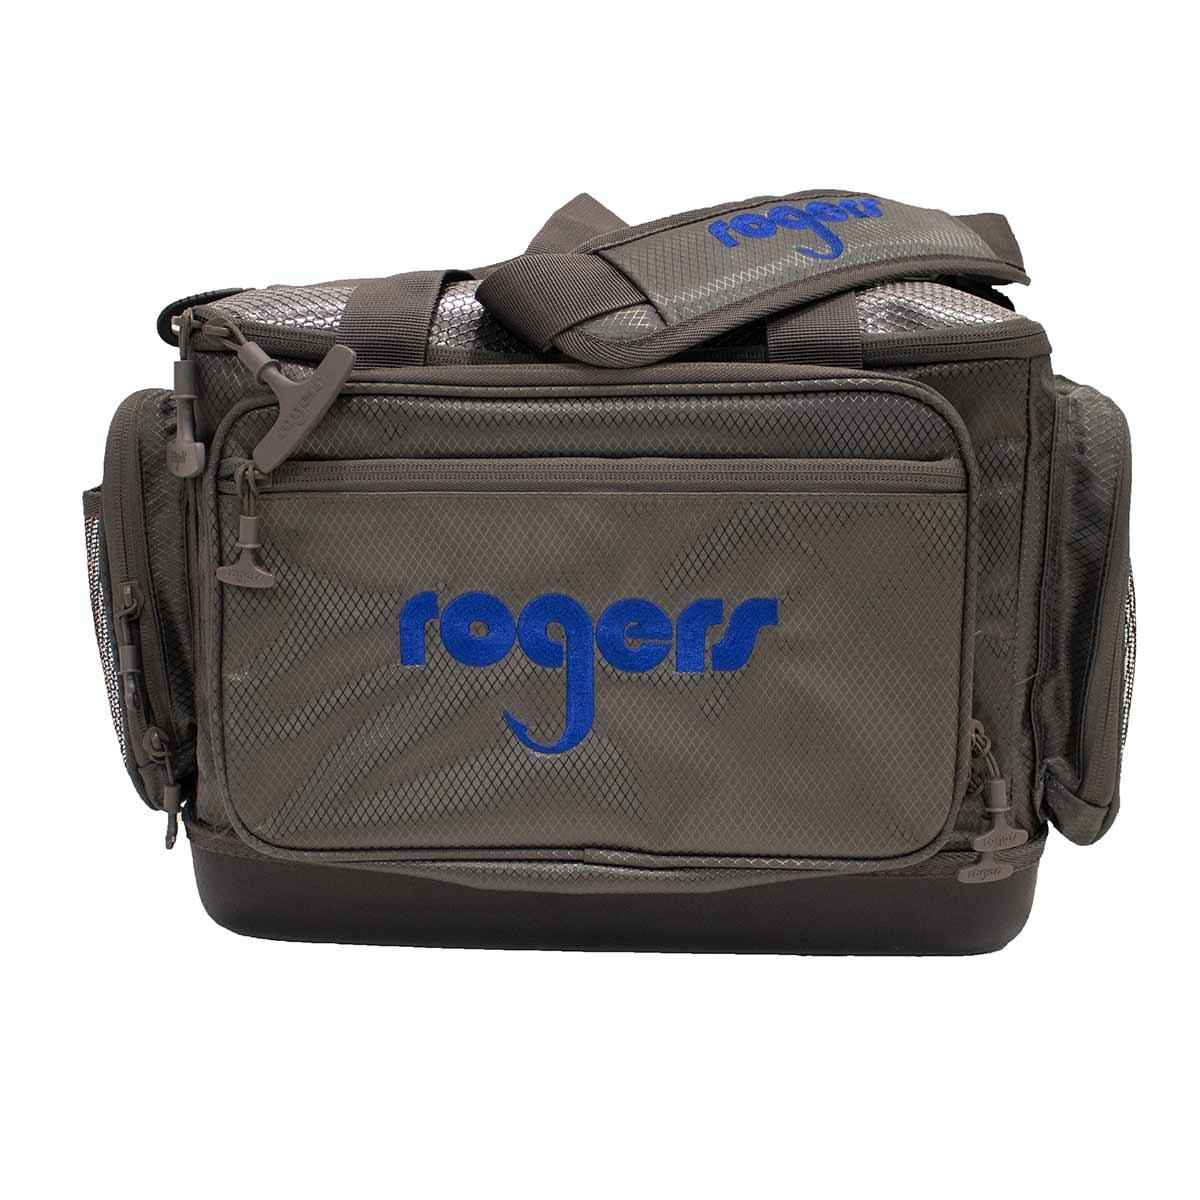 Rogers Elite Tackle Bag Medium_1.jpg